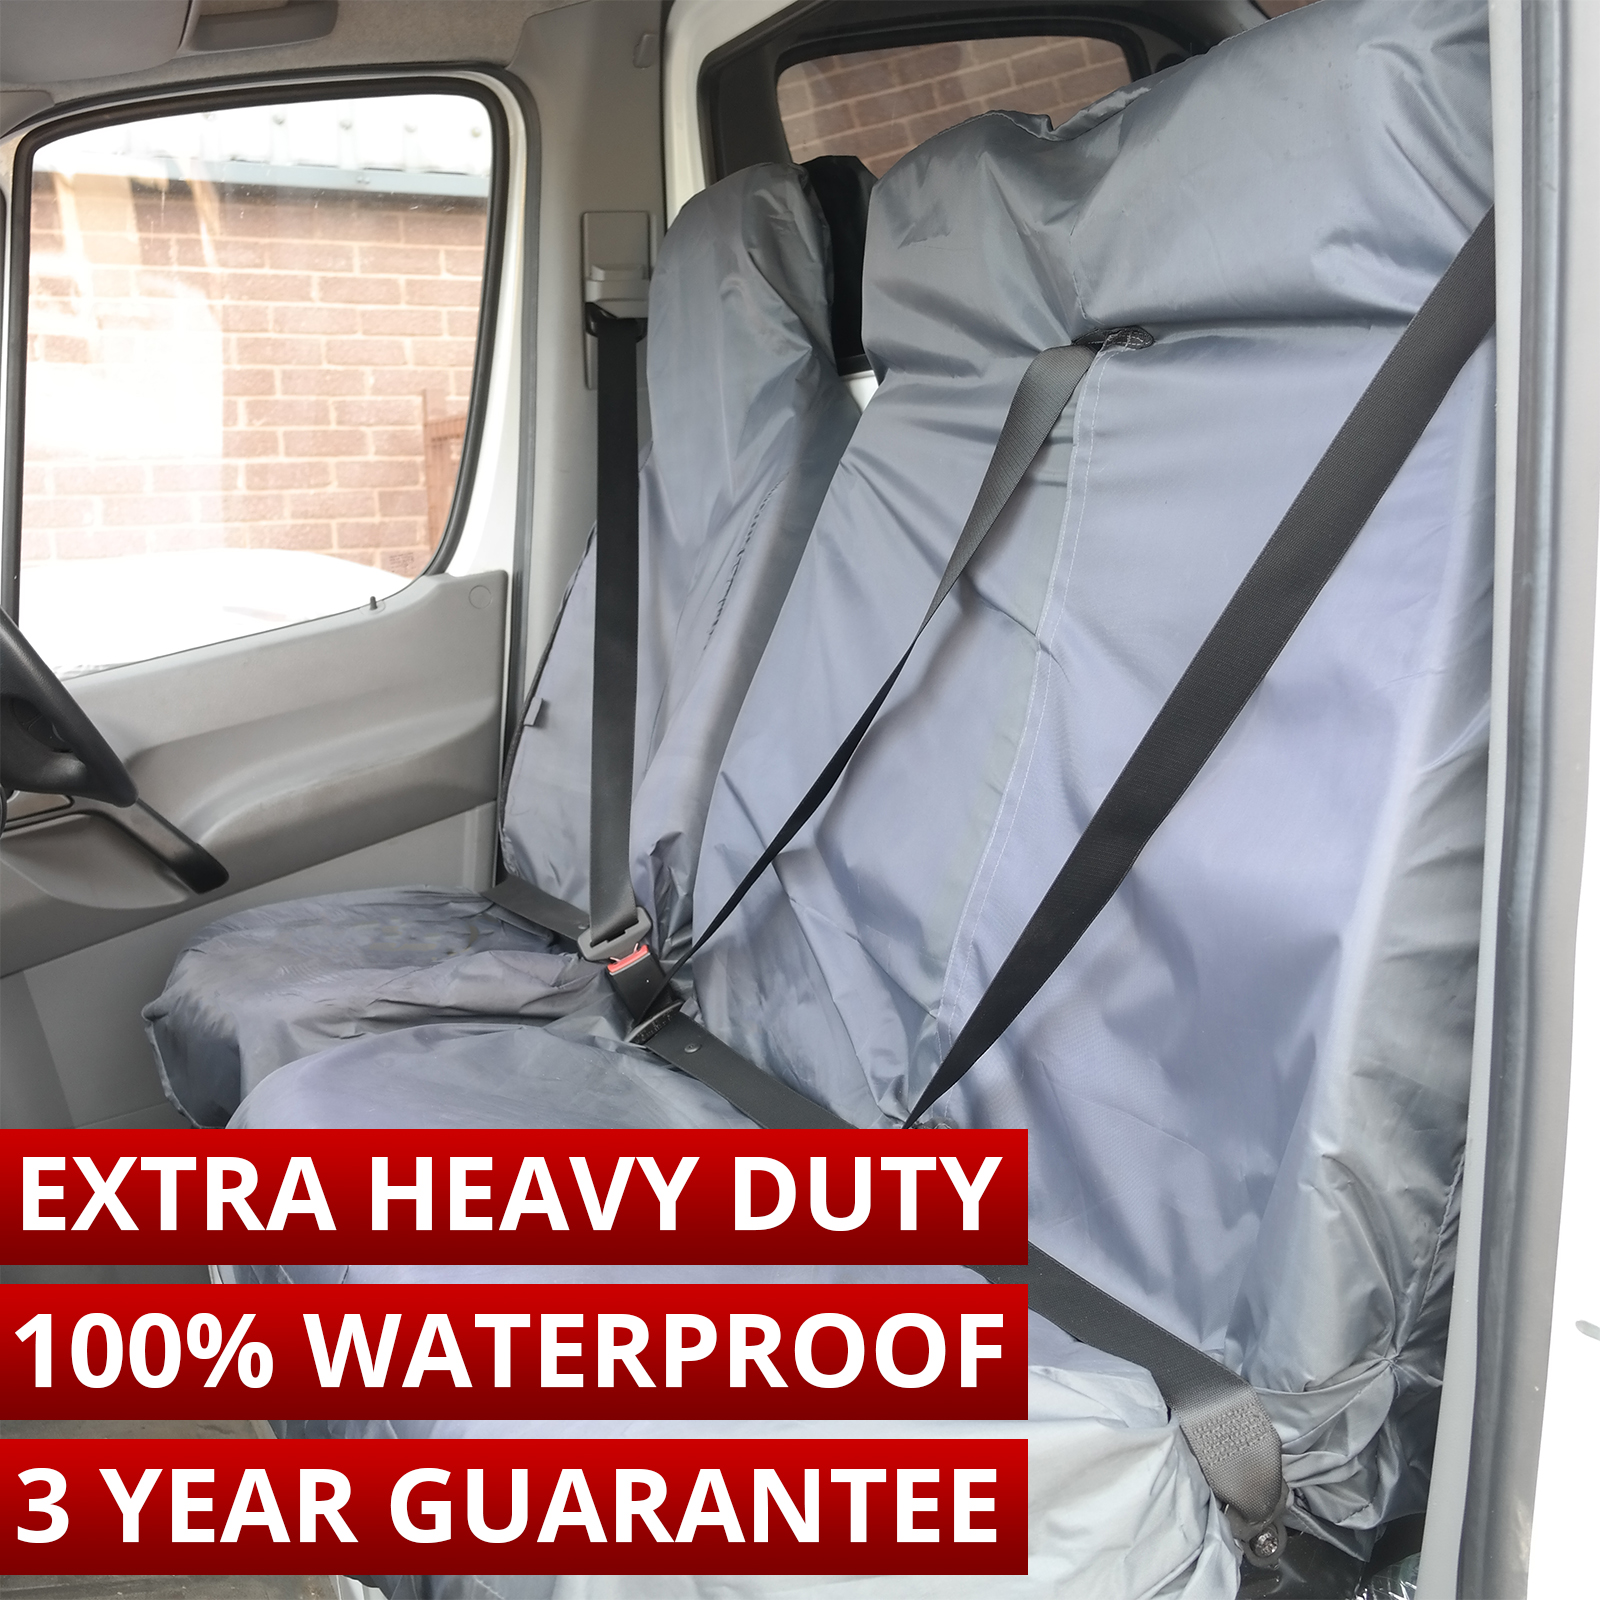 VAUXHALL VIVARO SWB MWB LWB HEAVY DUTY WATERPROOF BLACK SINGLE VAN SEAT COVER